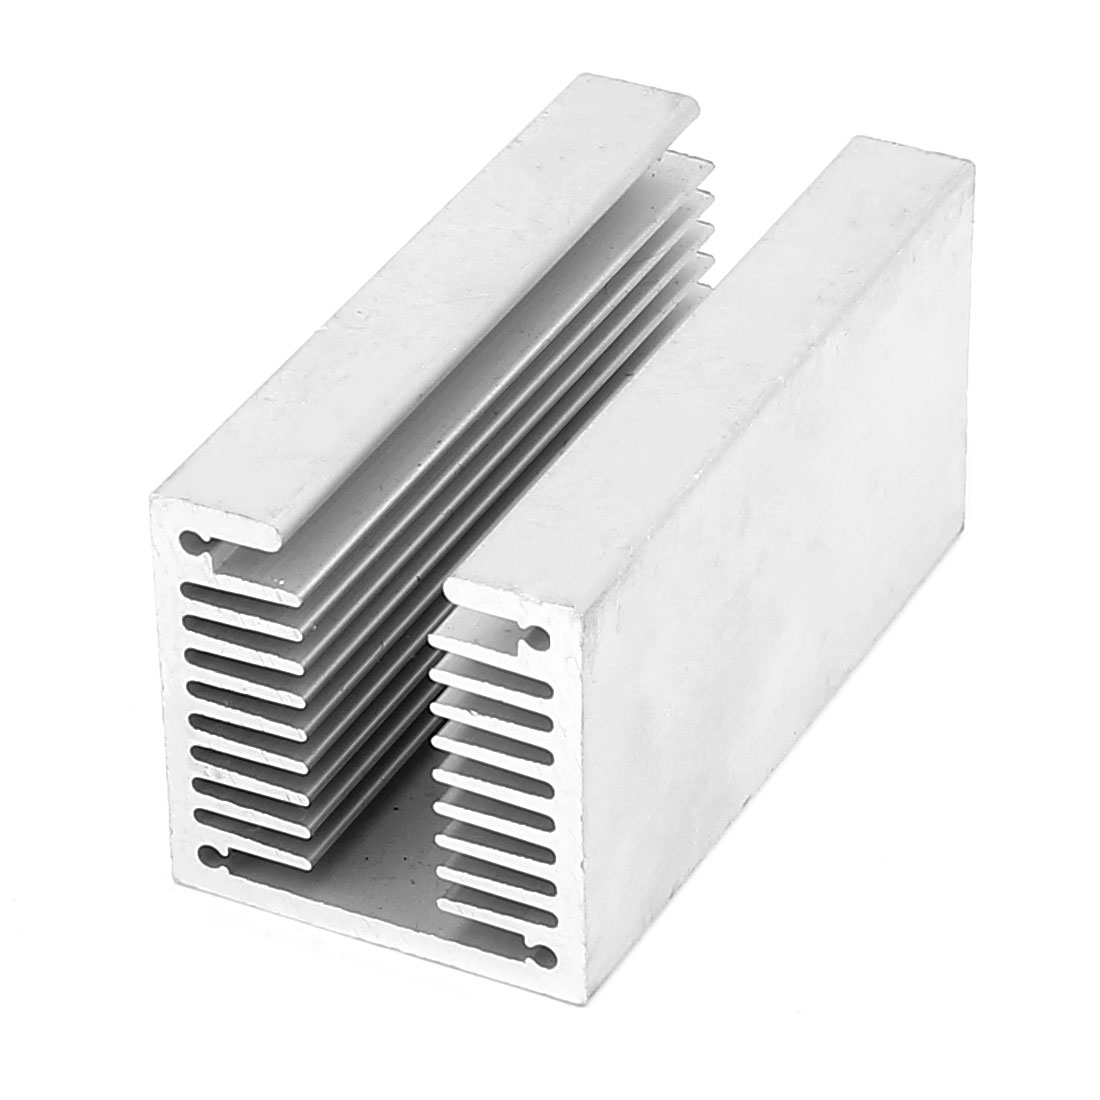 80mmx40mmx40mm U Shaped Aluminium Radiator Heatsink Cooling Fin